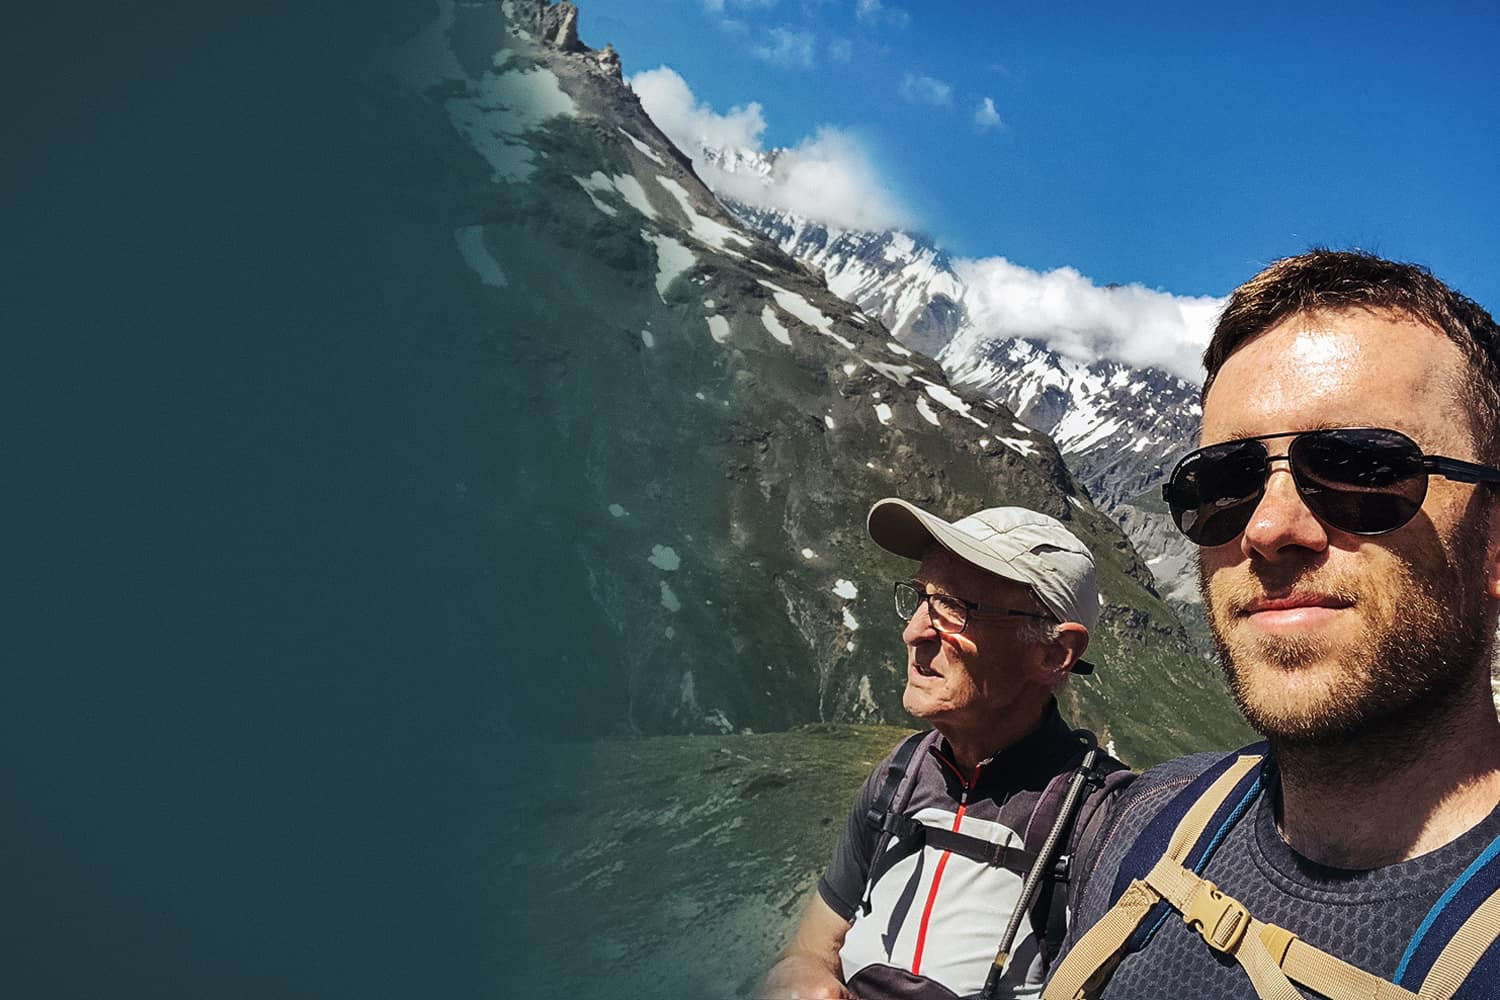 Established in 2019, Outdoors Generations was formed by a father and son team of passionate hikers and campers.